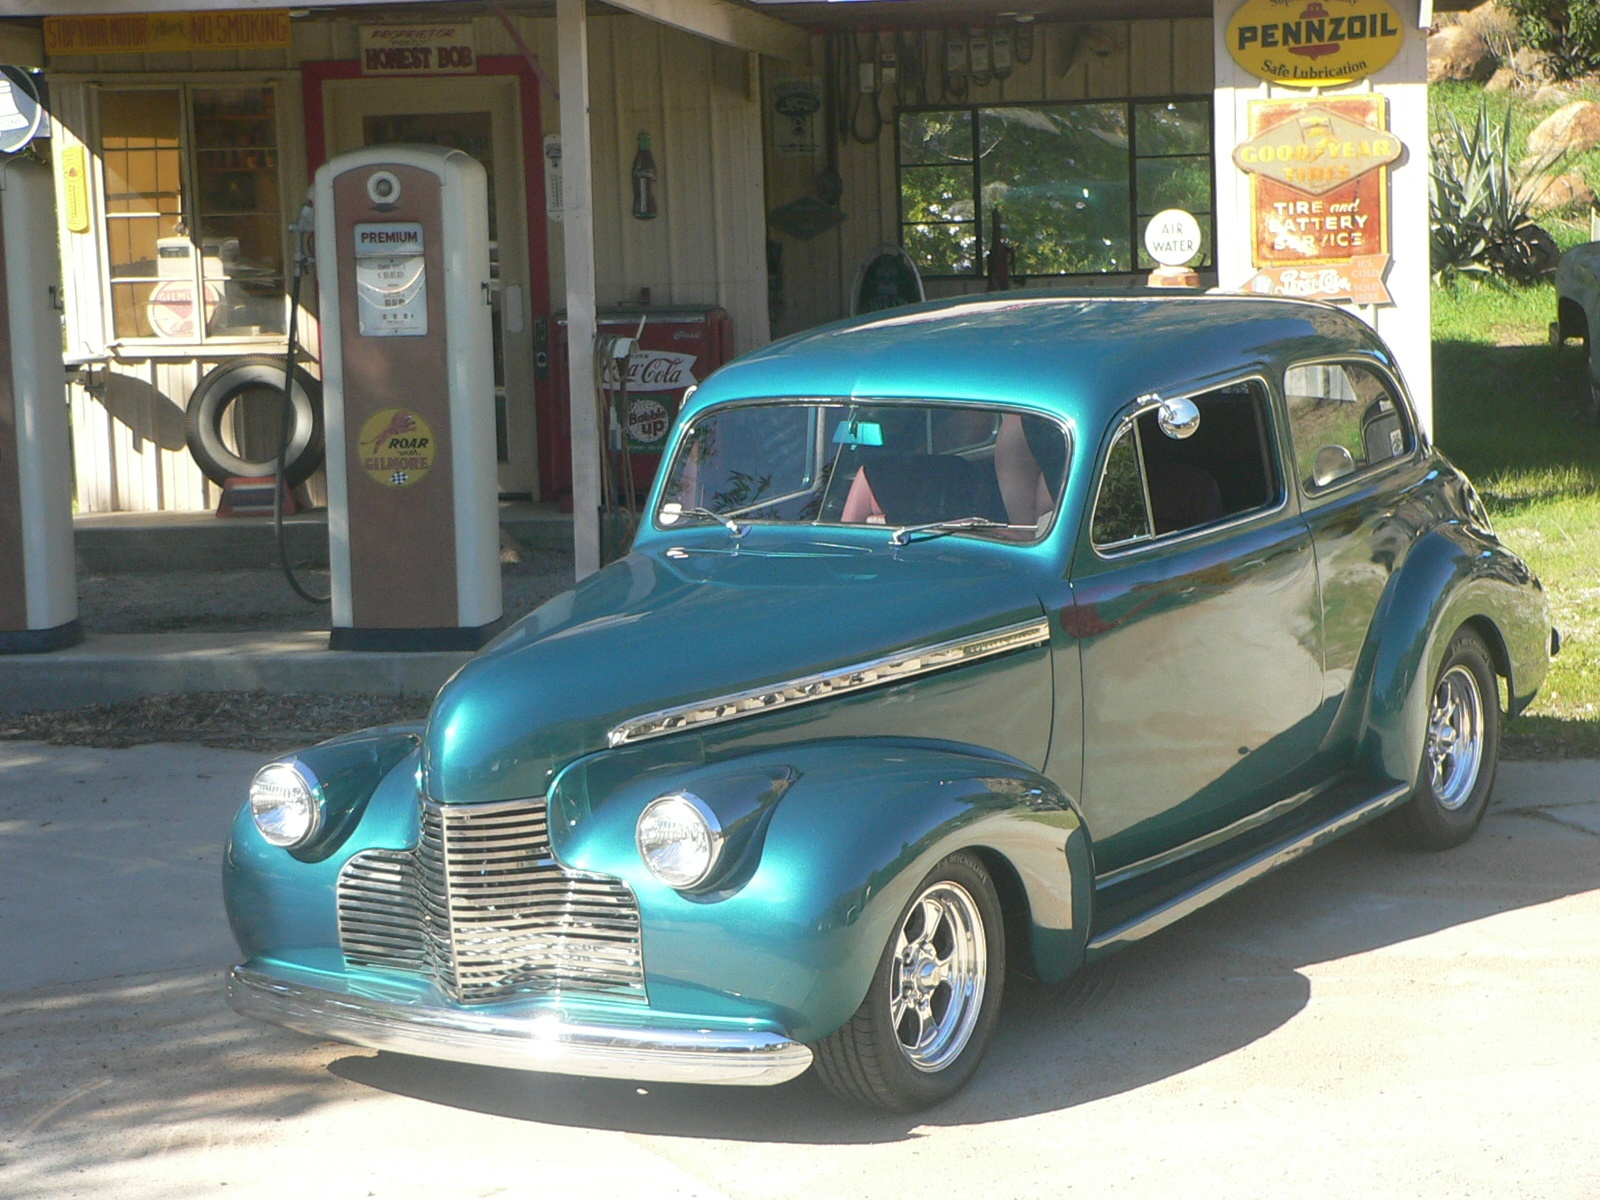 MIKE NEWELL'S '40 CHEVY 2 DOOR SEDAN - Over The Hill Gang